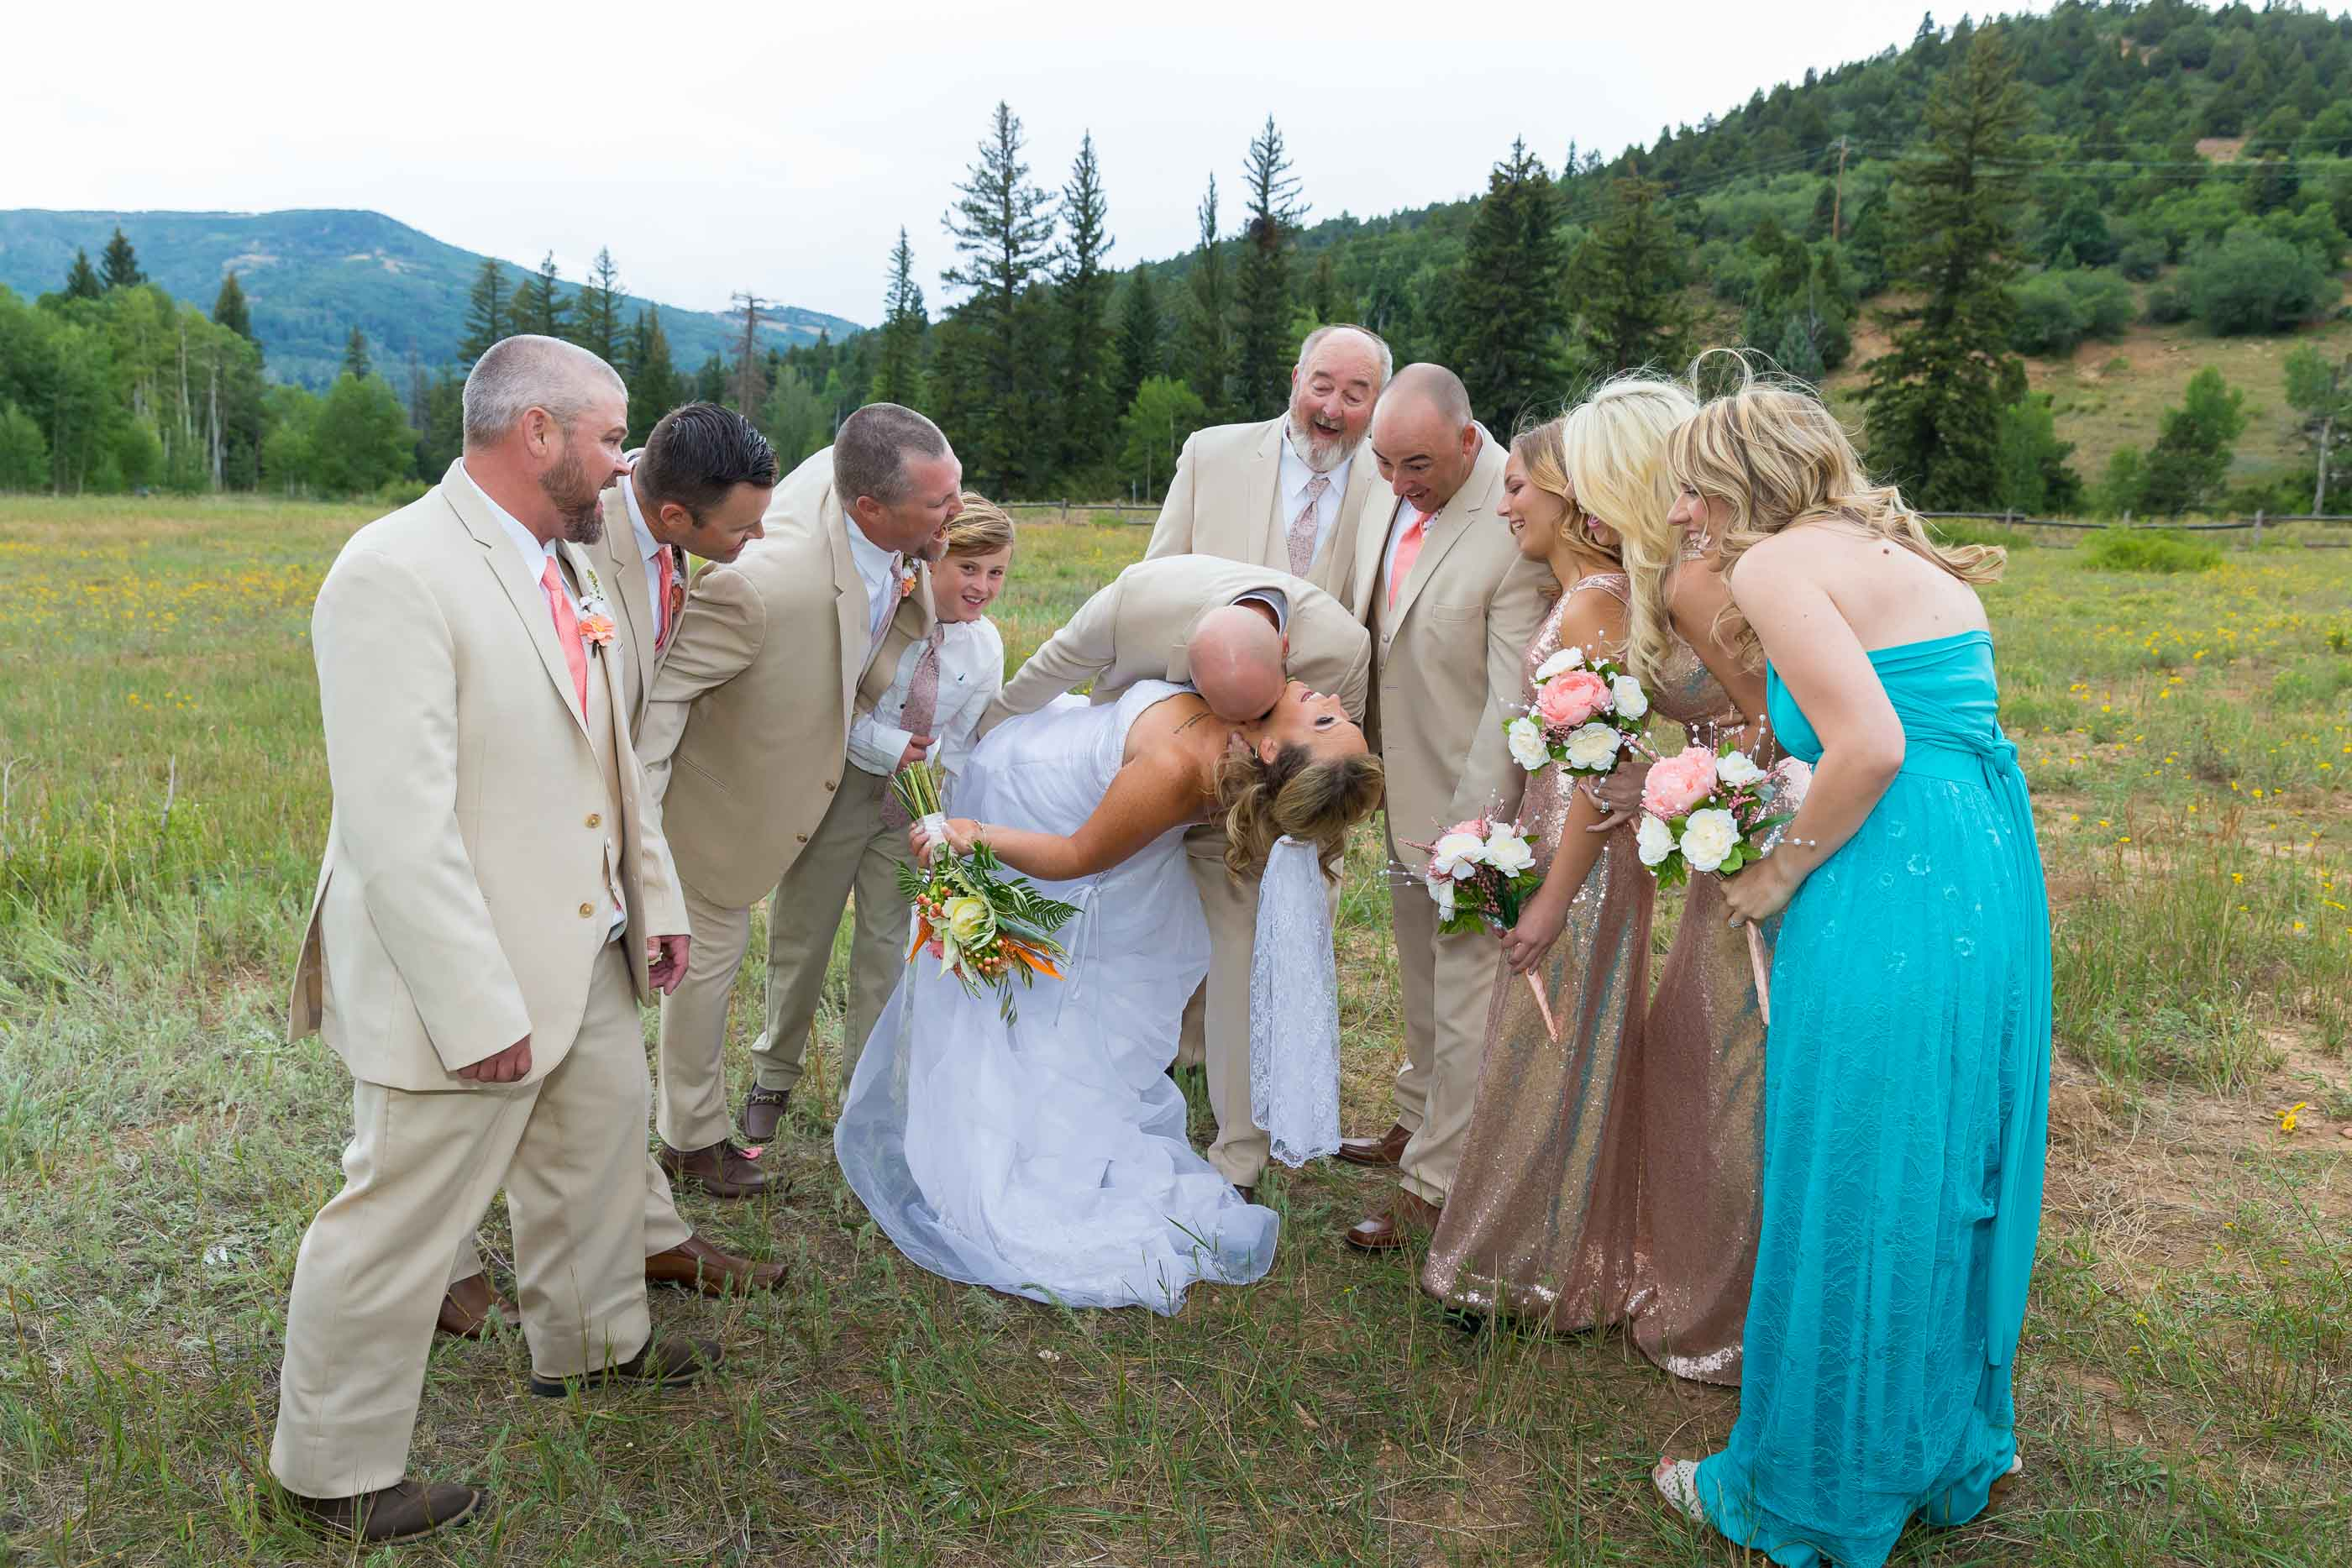 Cedar City Mountain Wedding Party